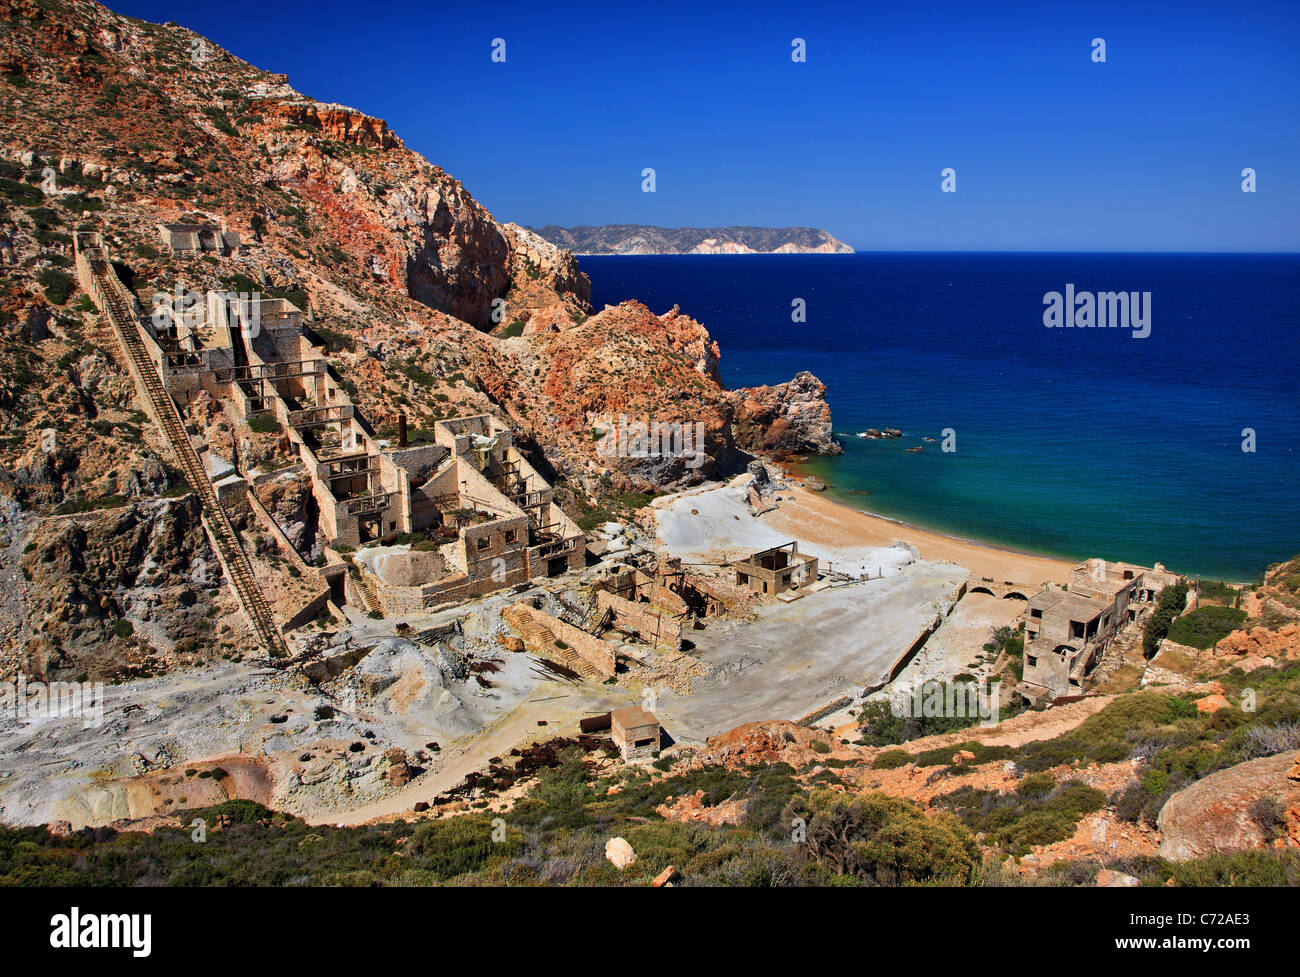 The abandoned sulfur mines and the beautiful beach with underwater hot springs in Milos island, Cyclades, Greece. - Stock Image